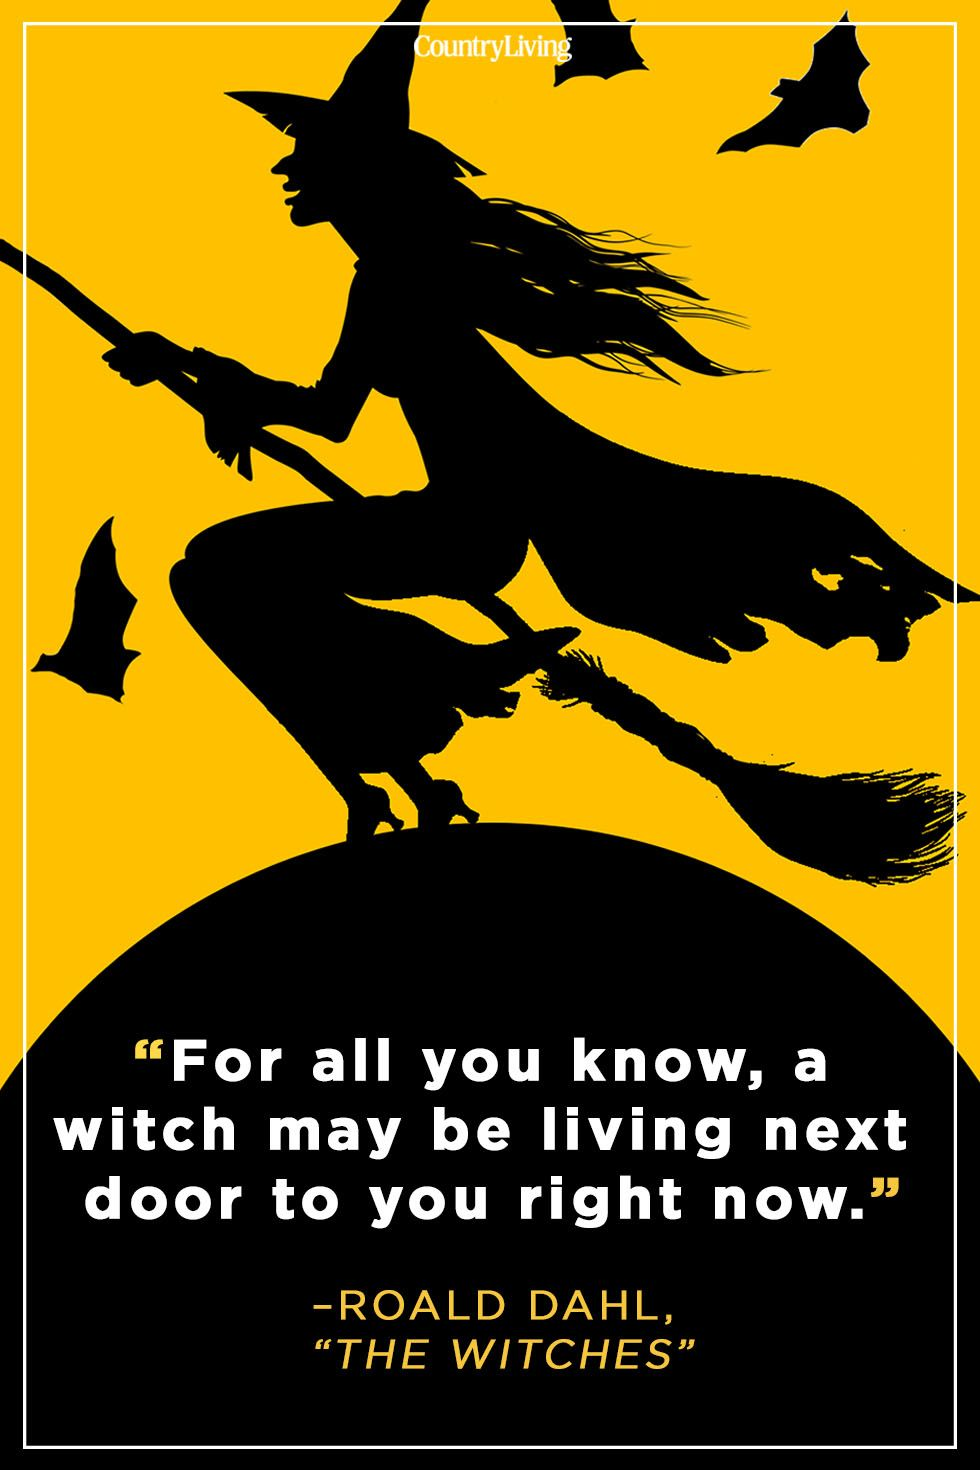 30 Best Witch Quotes - Quotes and Sayings About Witches